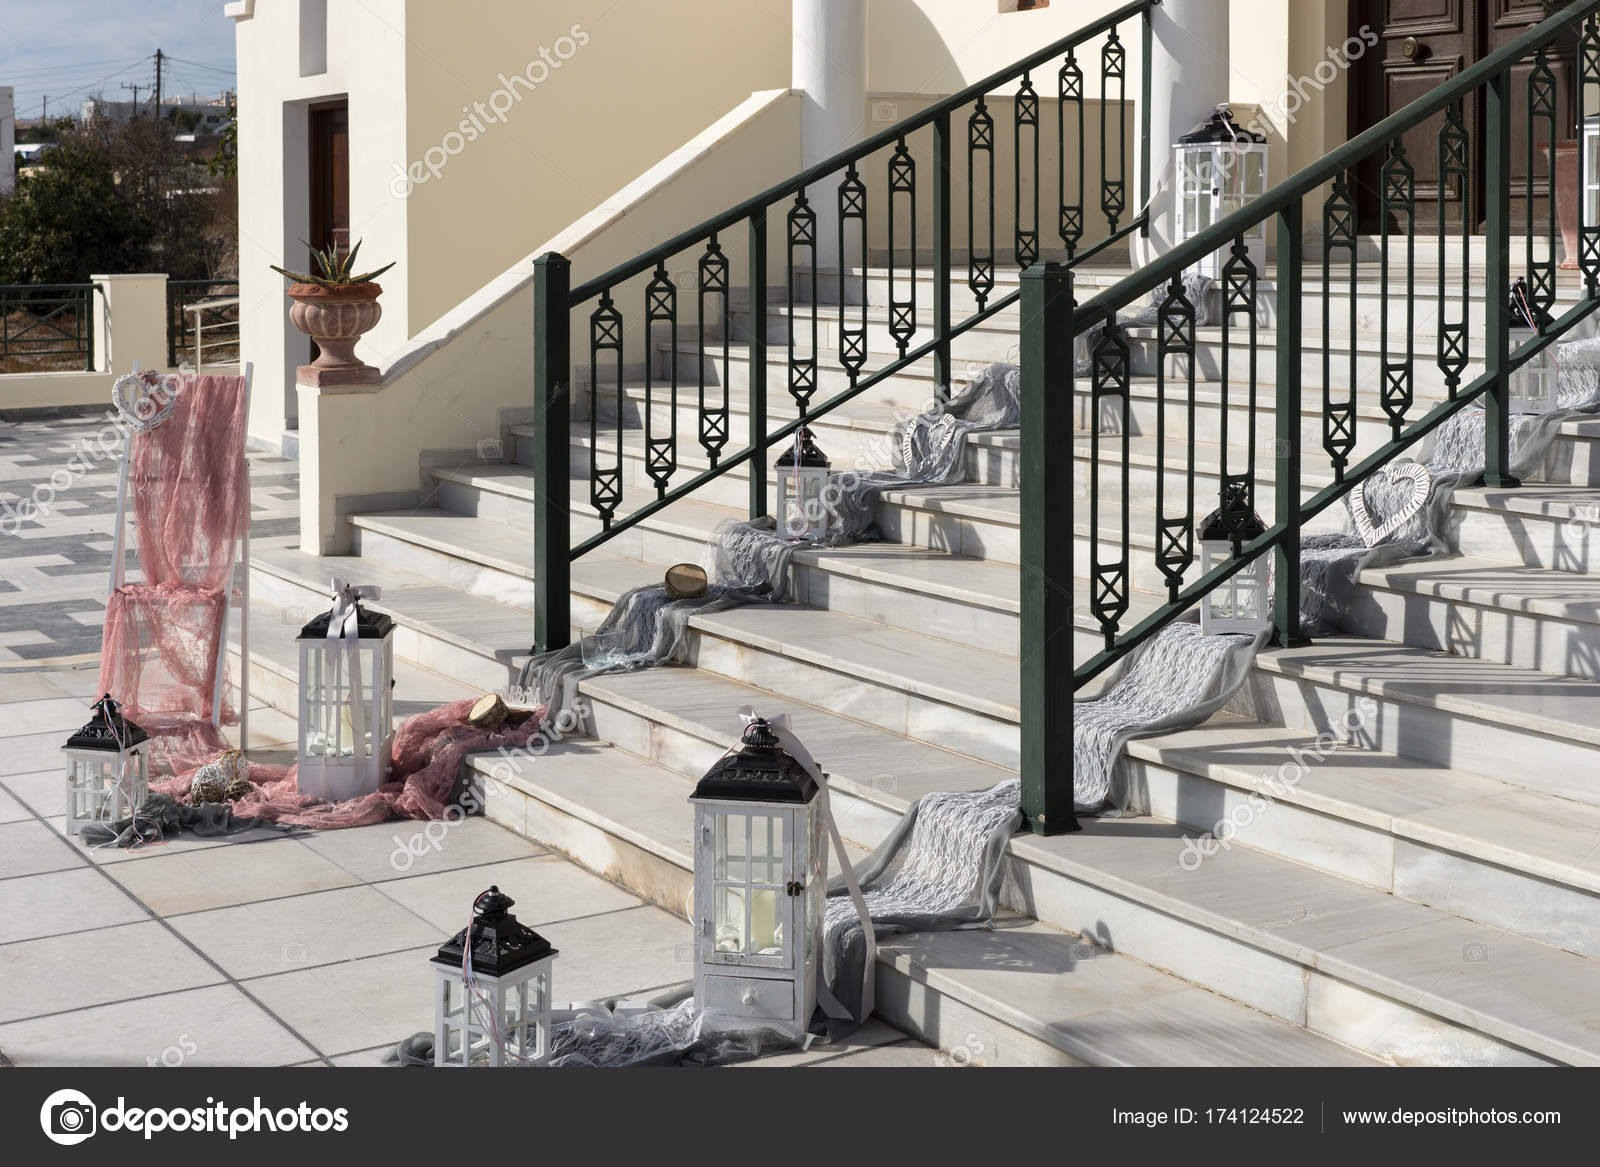 Wedding decoration on the stairs to the church stock photo wedding decoration on the stairs to the church stock photo junglespirit Image collections